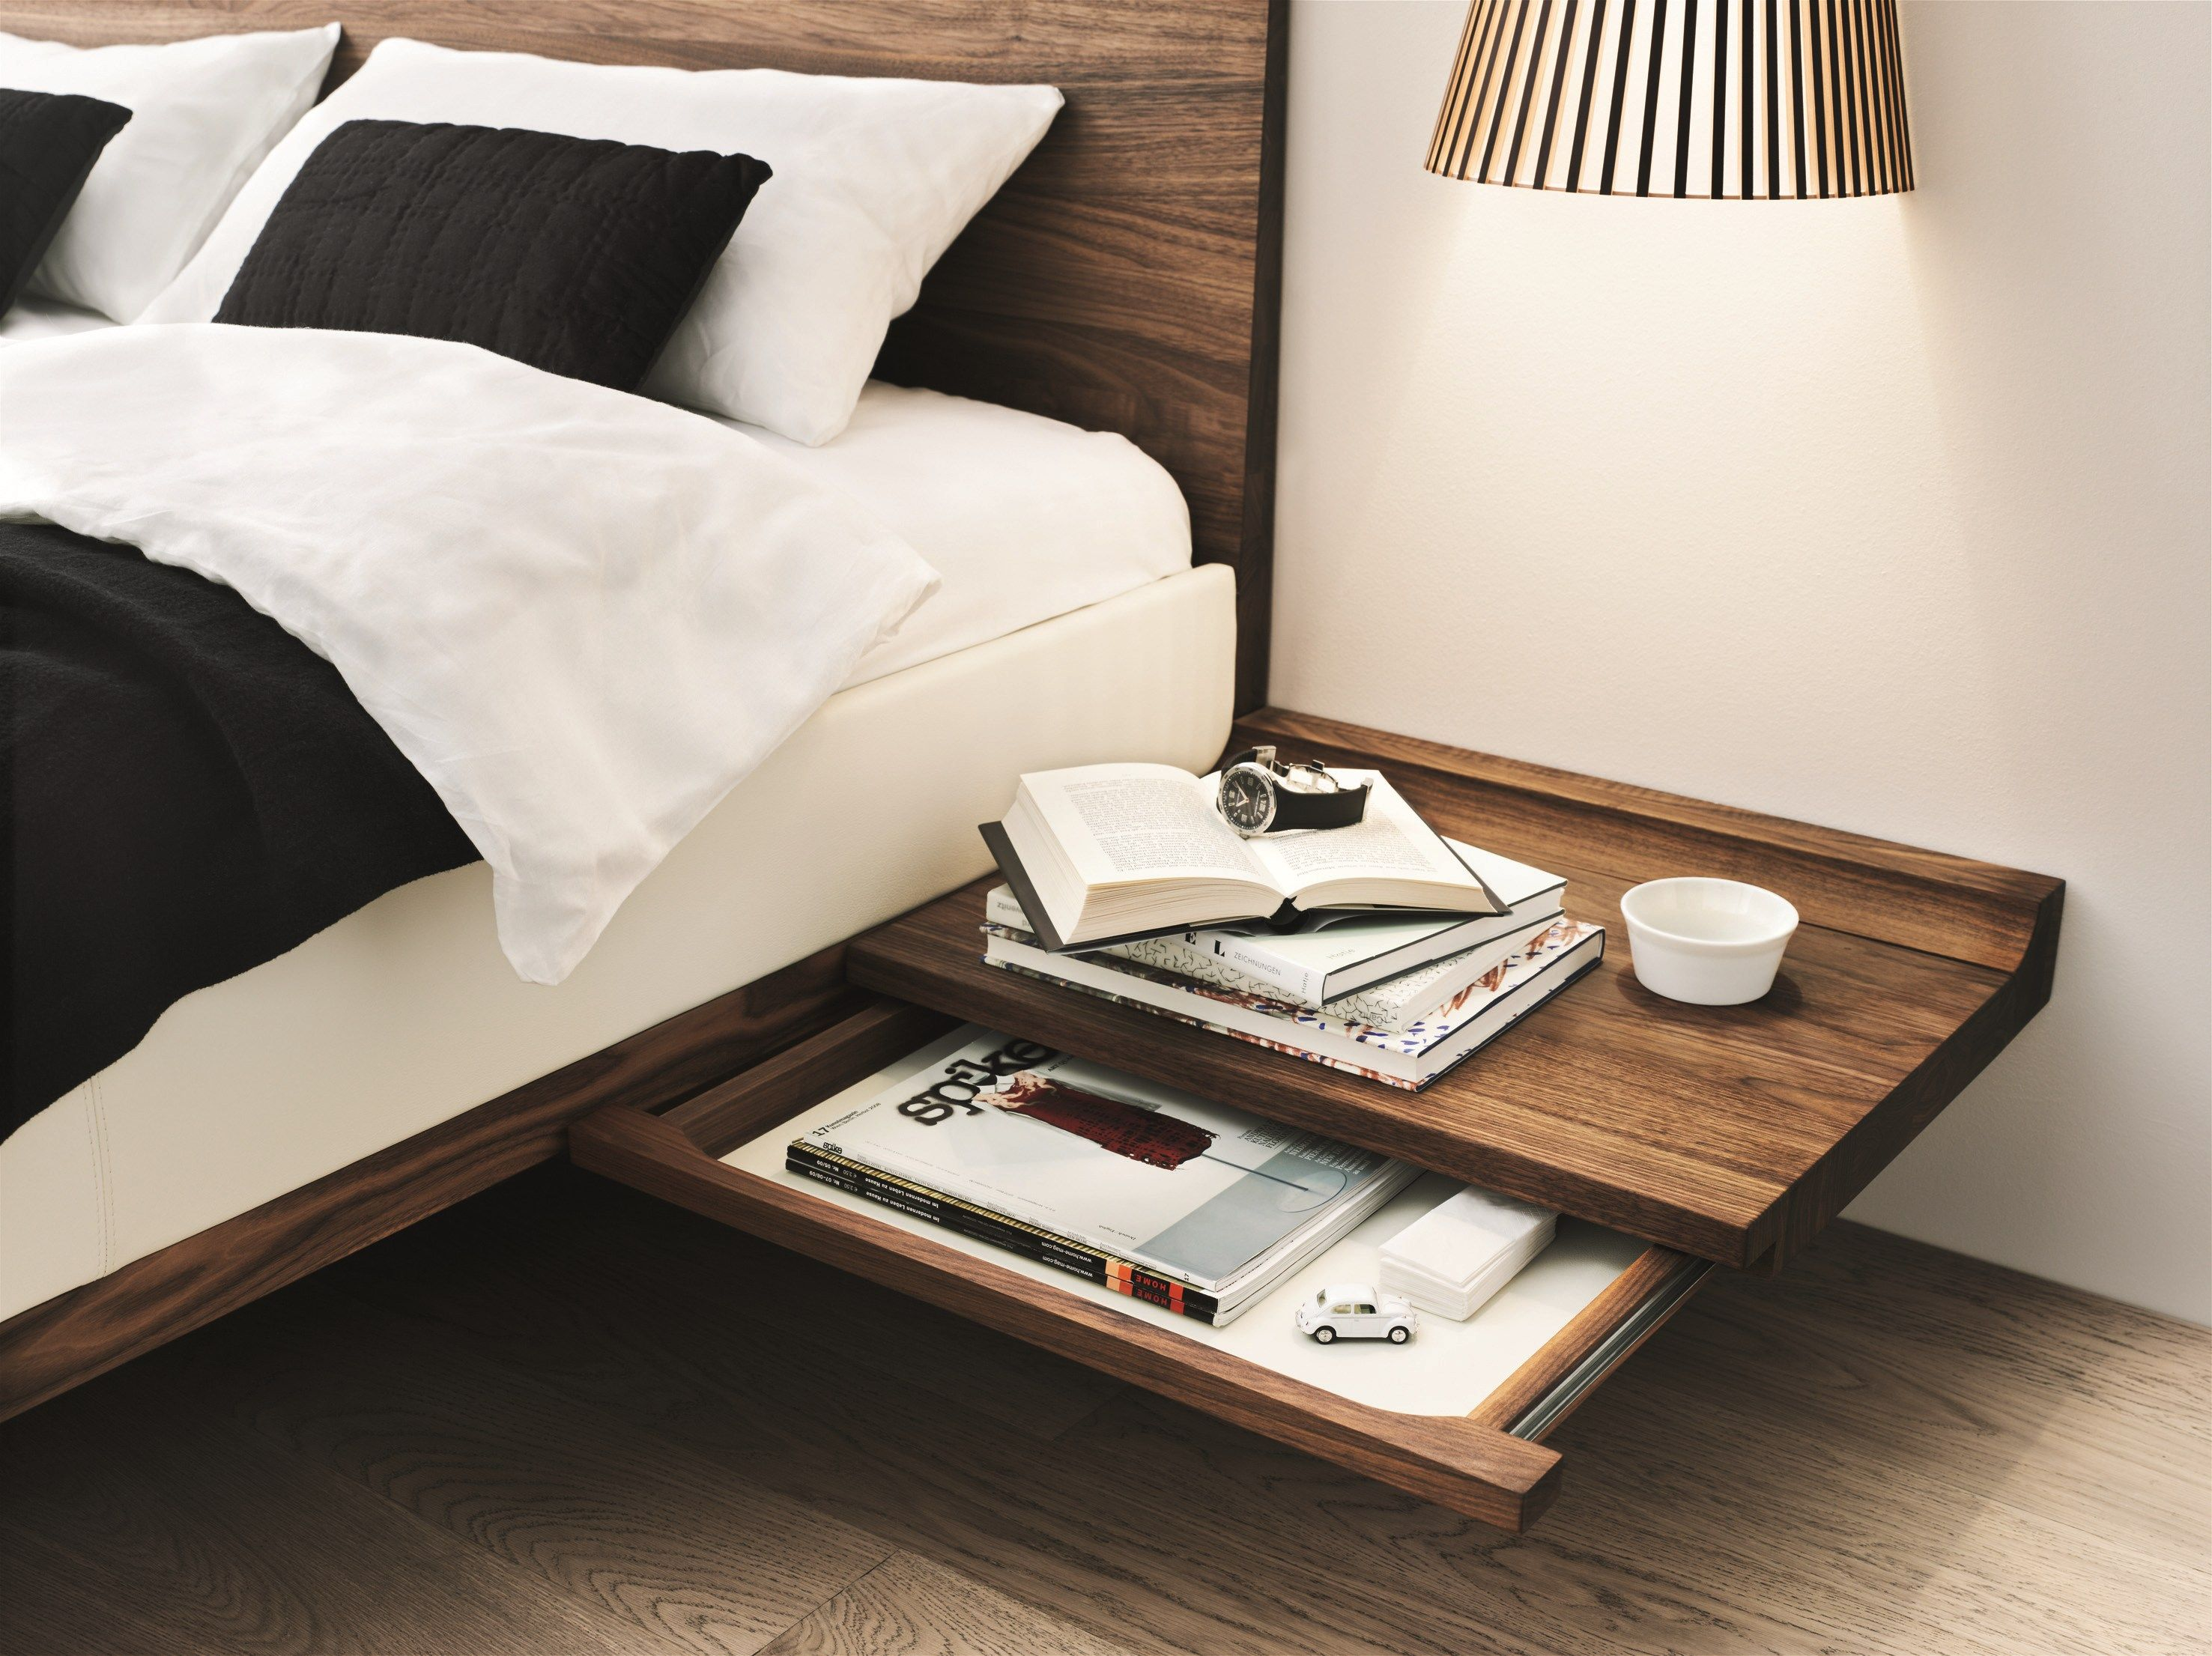 Double bed designs in wood - Solid Wood Double Bed Riletto Riletto Collection By Team 7 Nat Rlich Wohnen Design Kai Stania